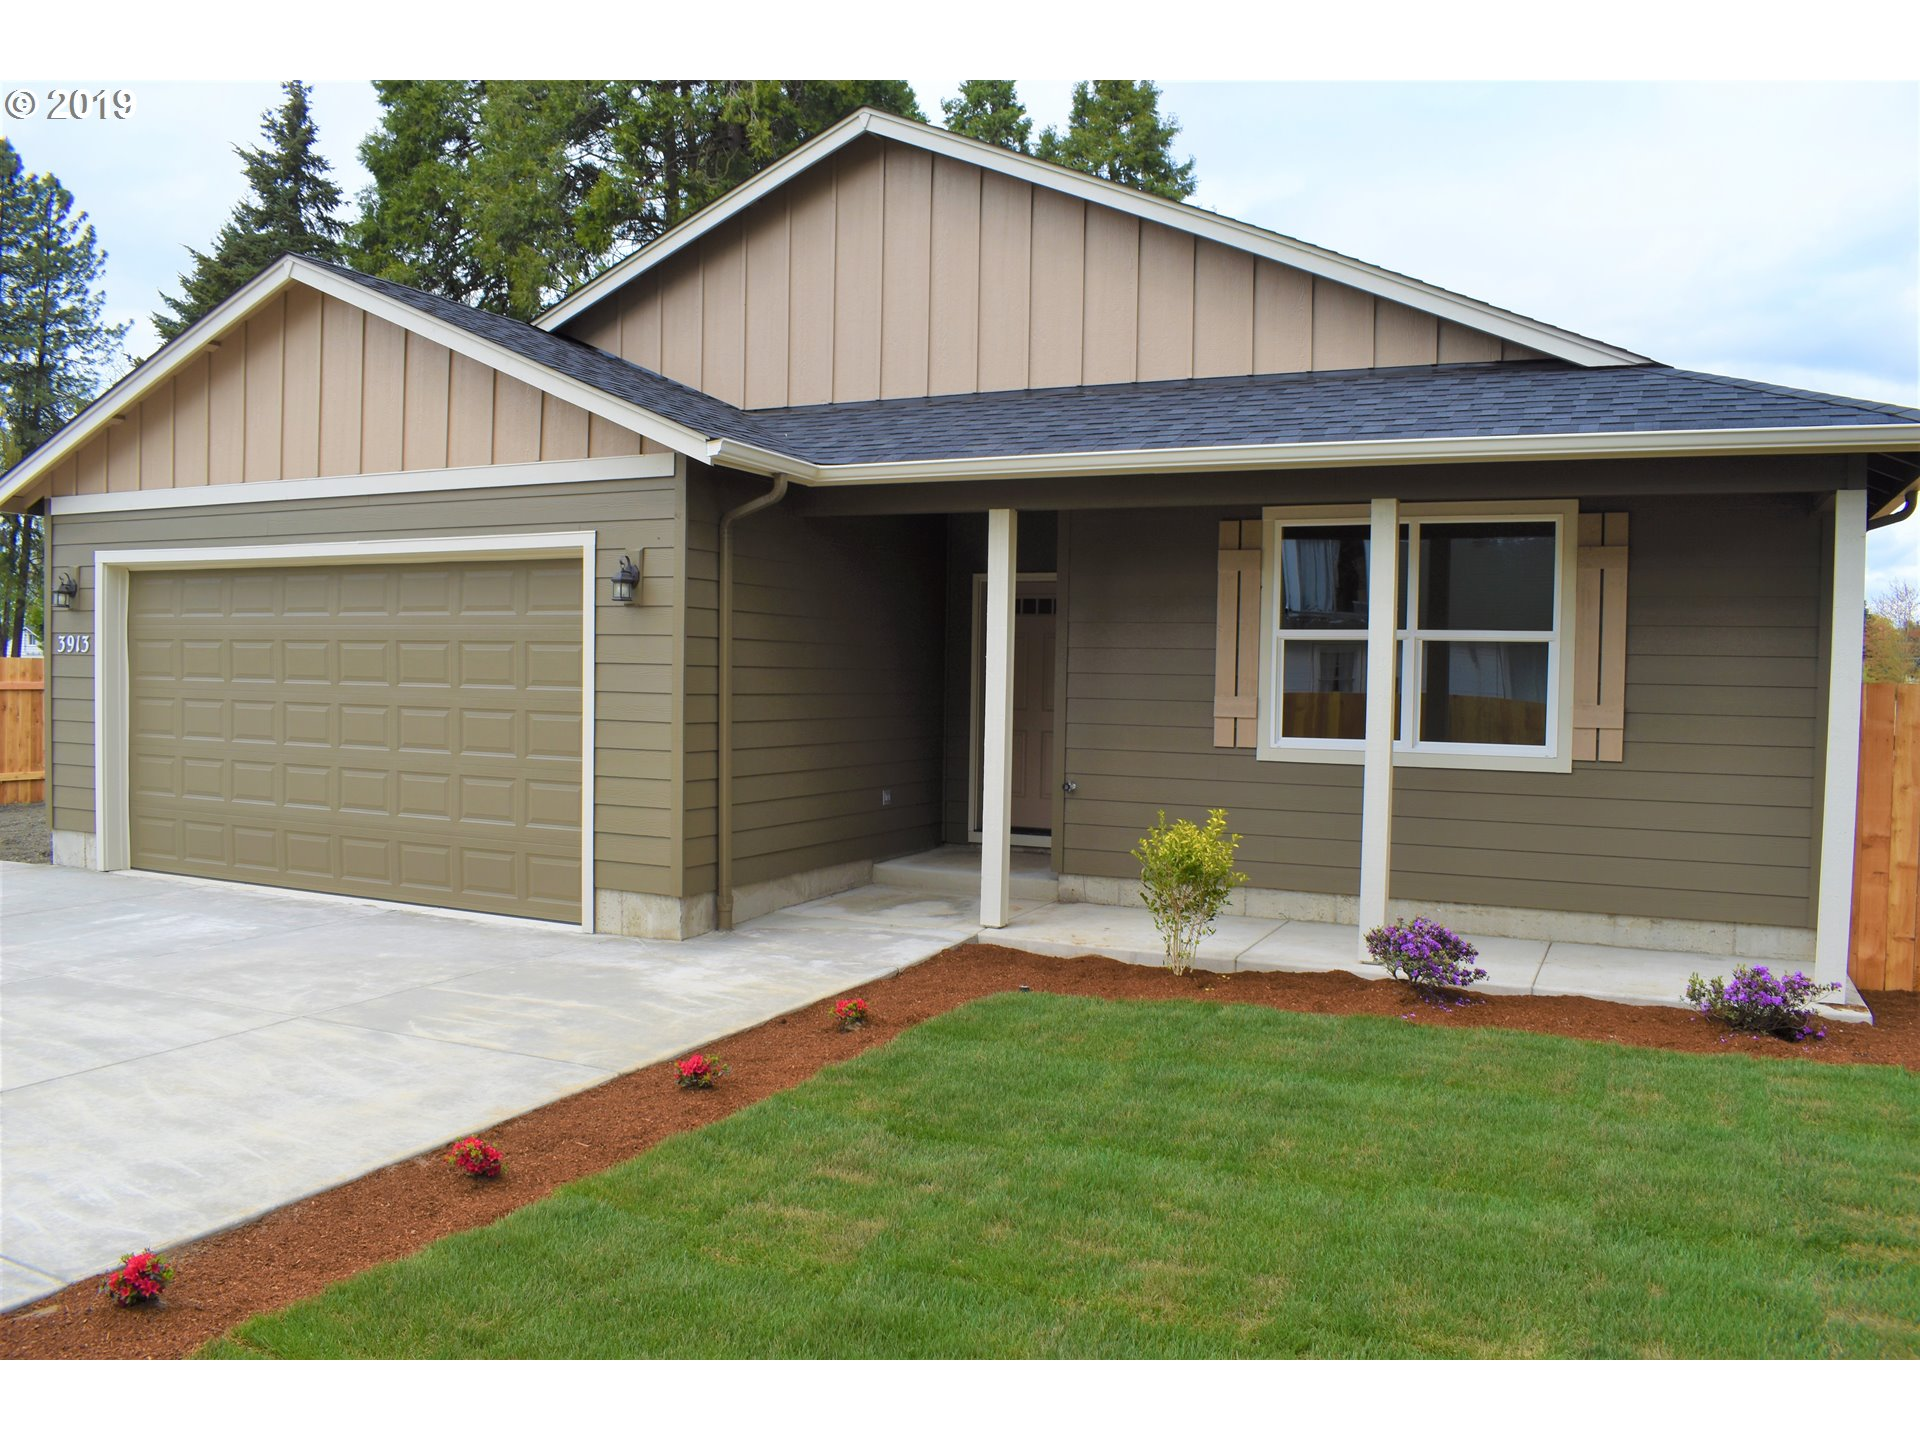 3913 ROYAL AVE Eugene Home Listings - Galand Haas Real Estate